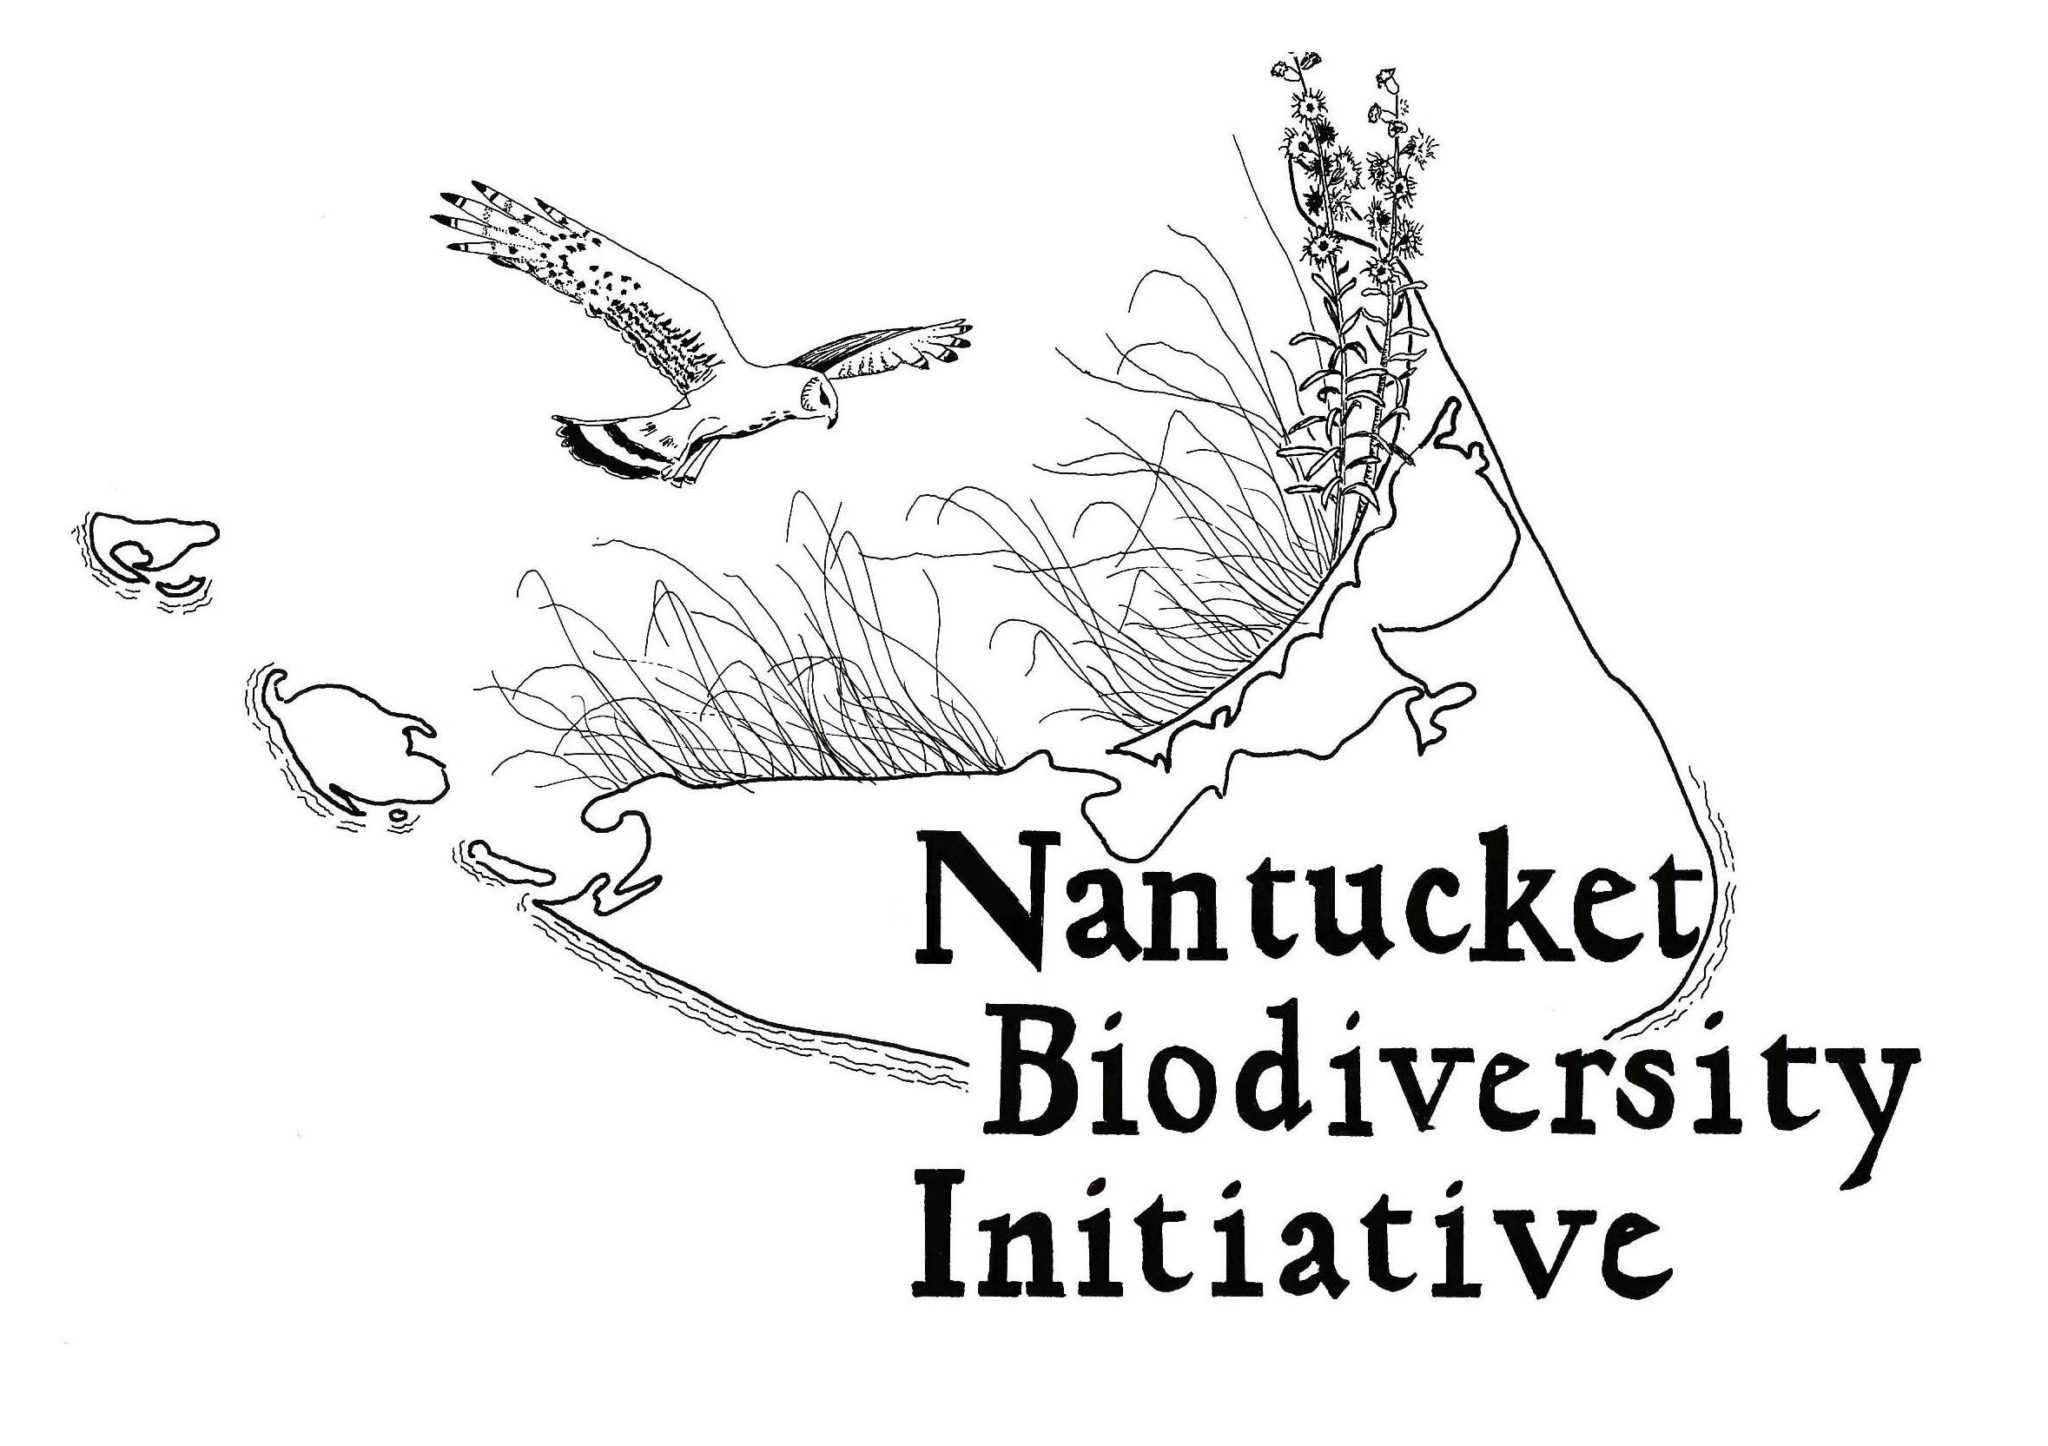 Nantucket Biodiversity Initiative Logo With White Border